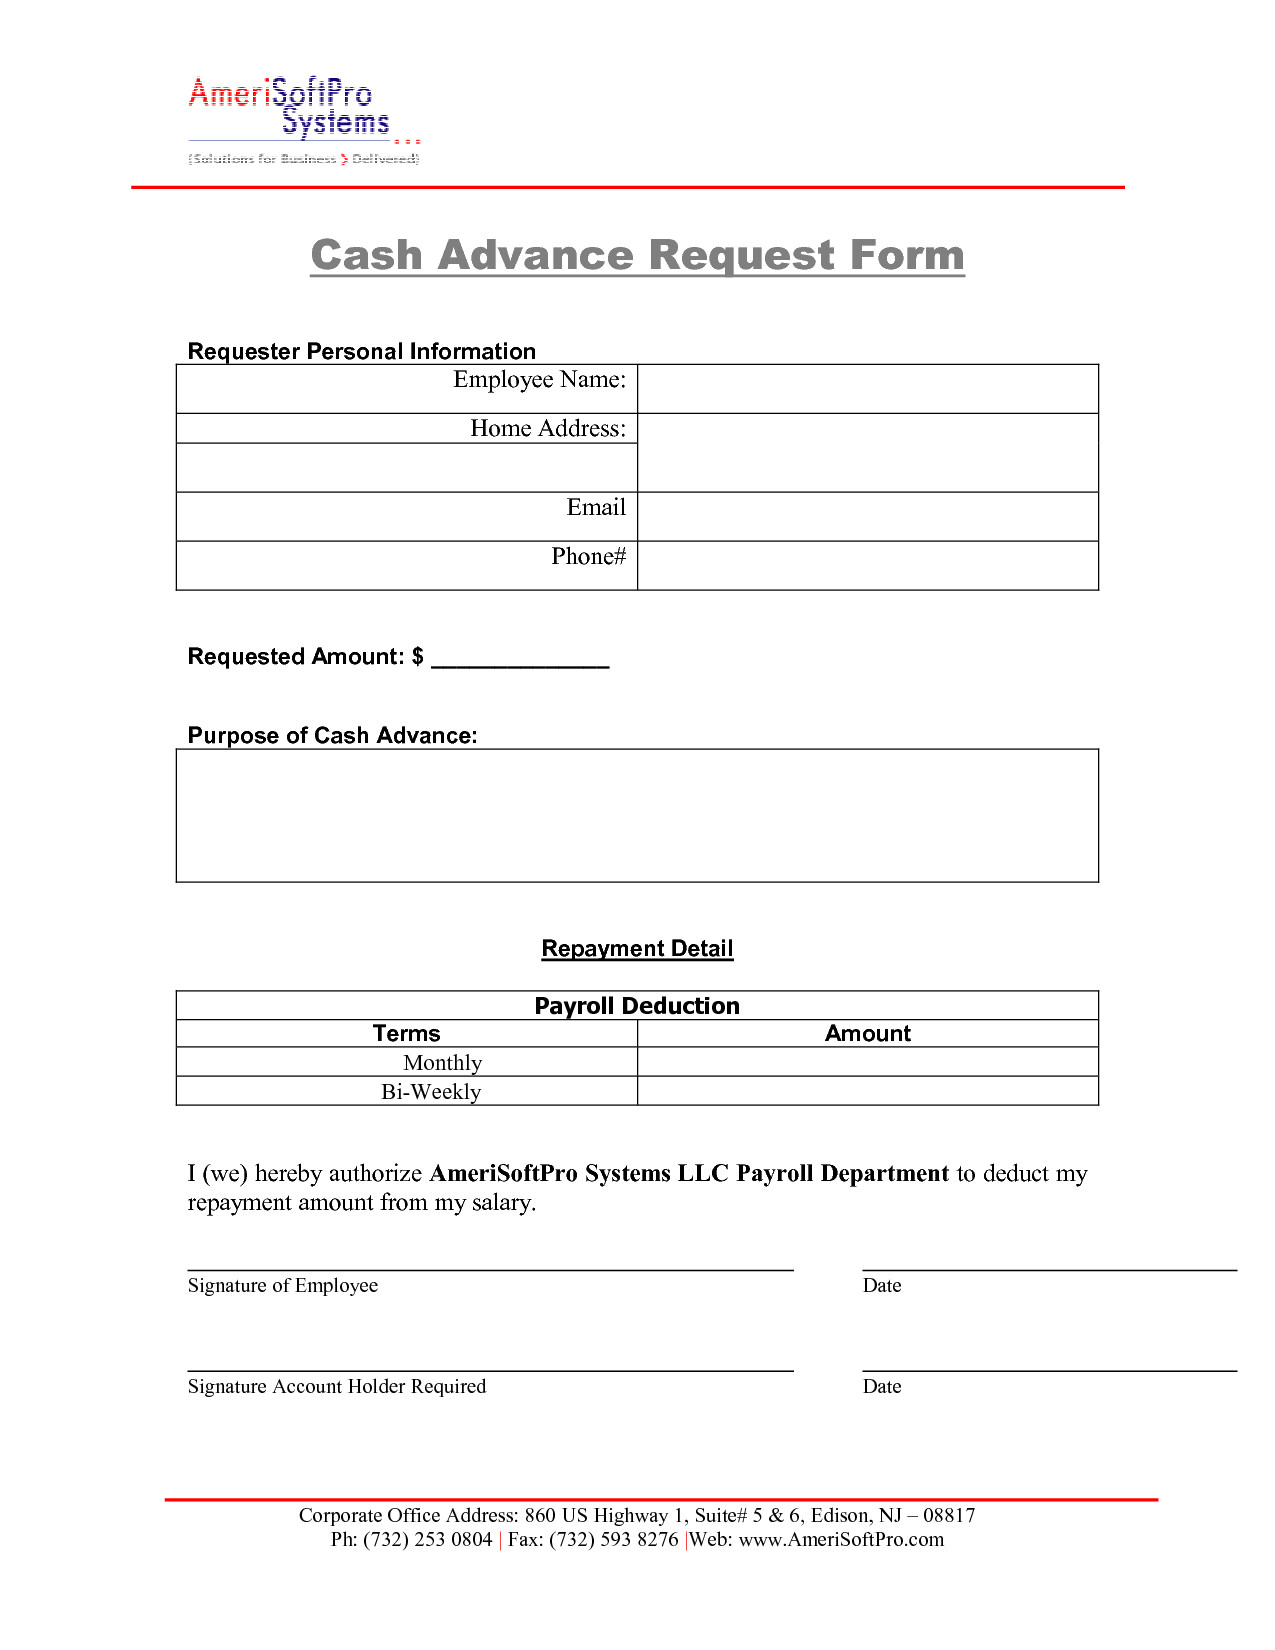 Cash Advance Form Format 0 – elsik blue cetane